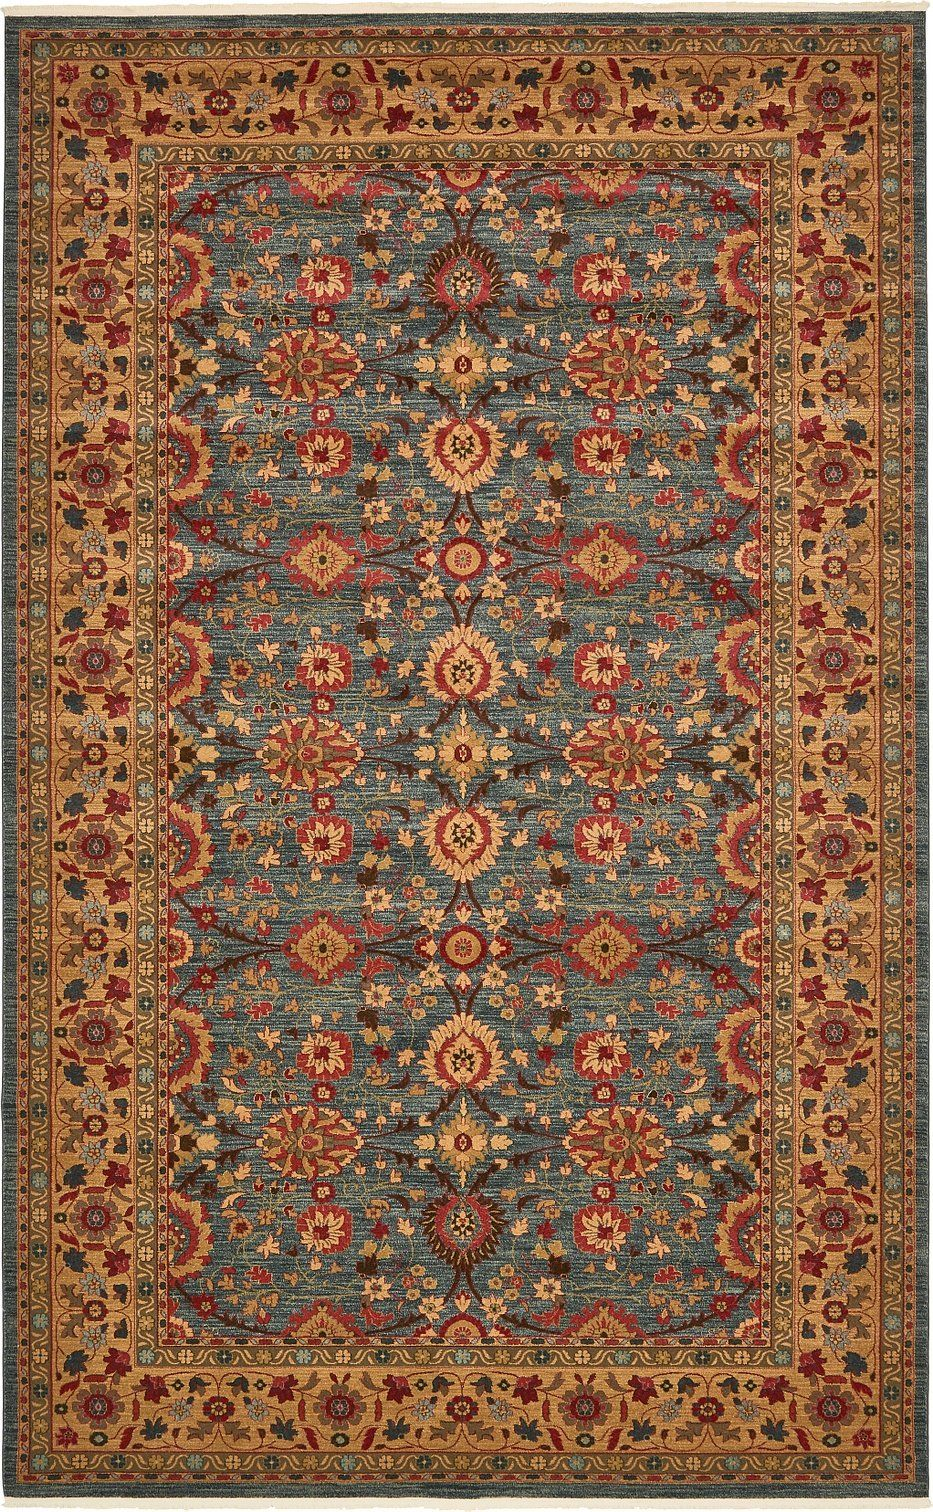 A2z Rug Heritage Collection Persian Traditional Area Blue Brown 10 6 X